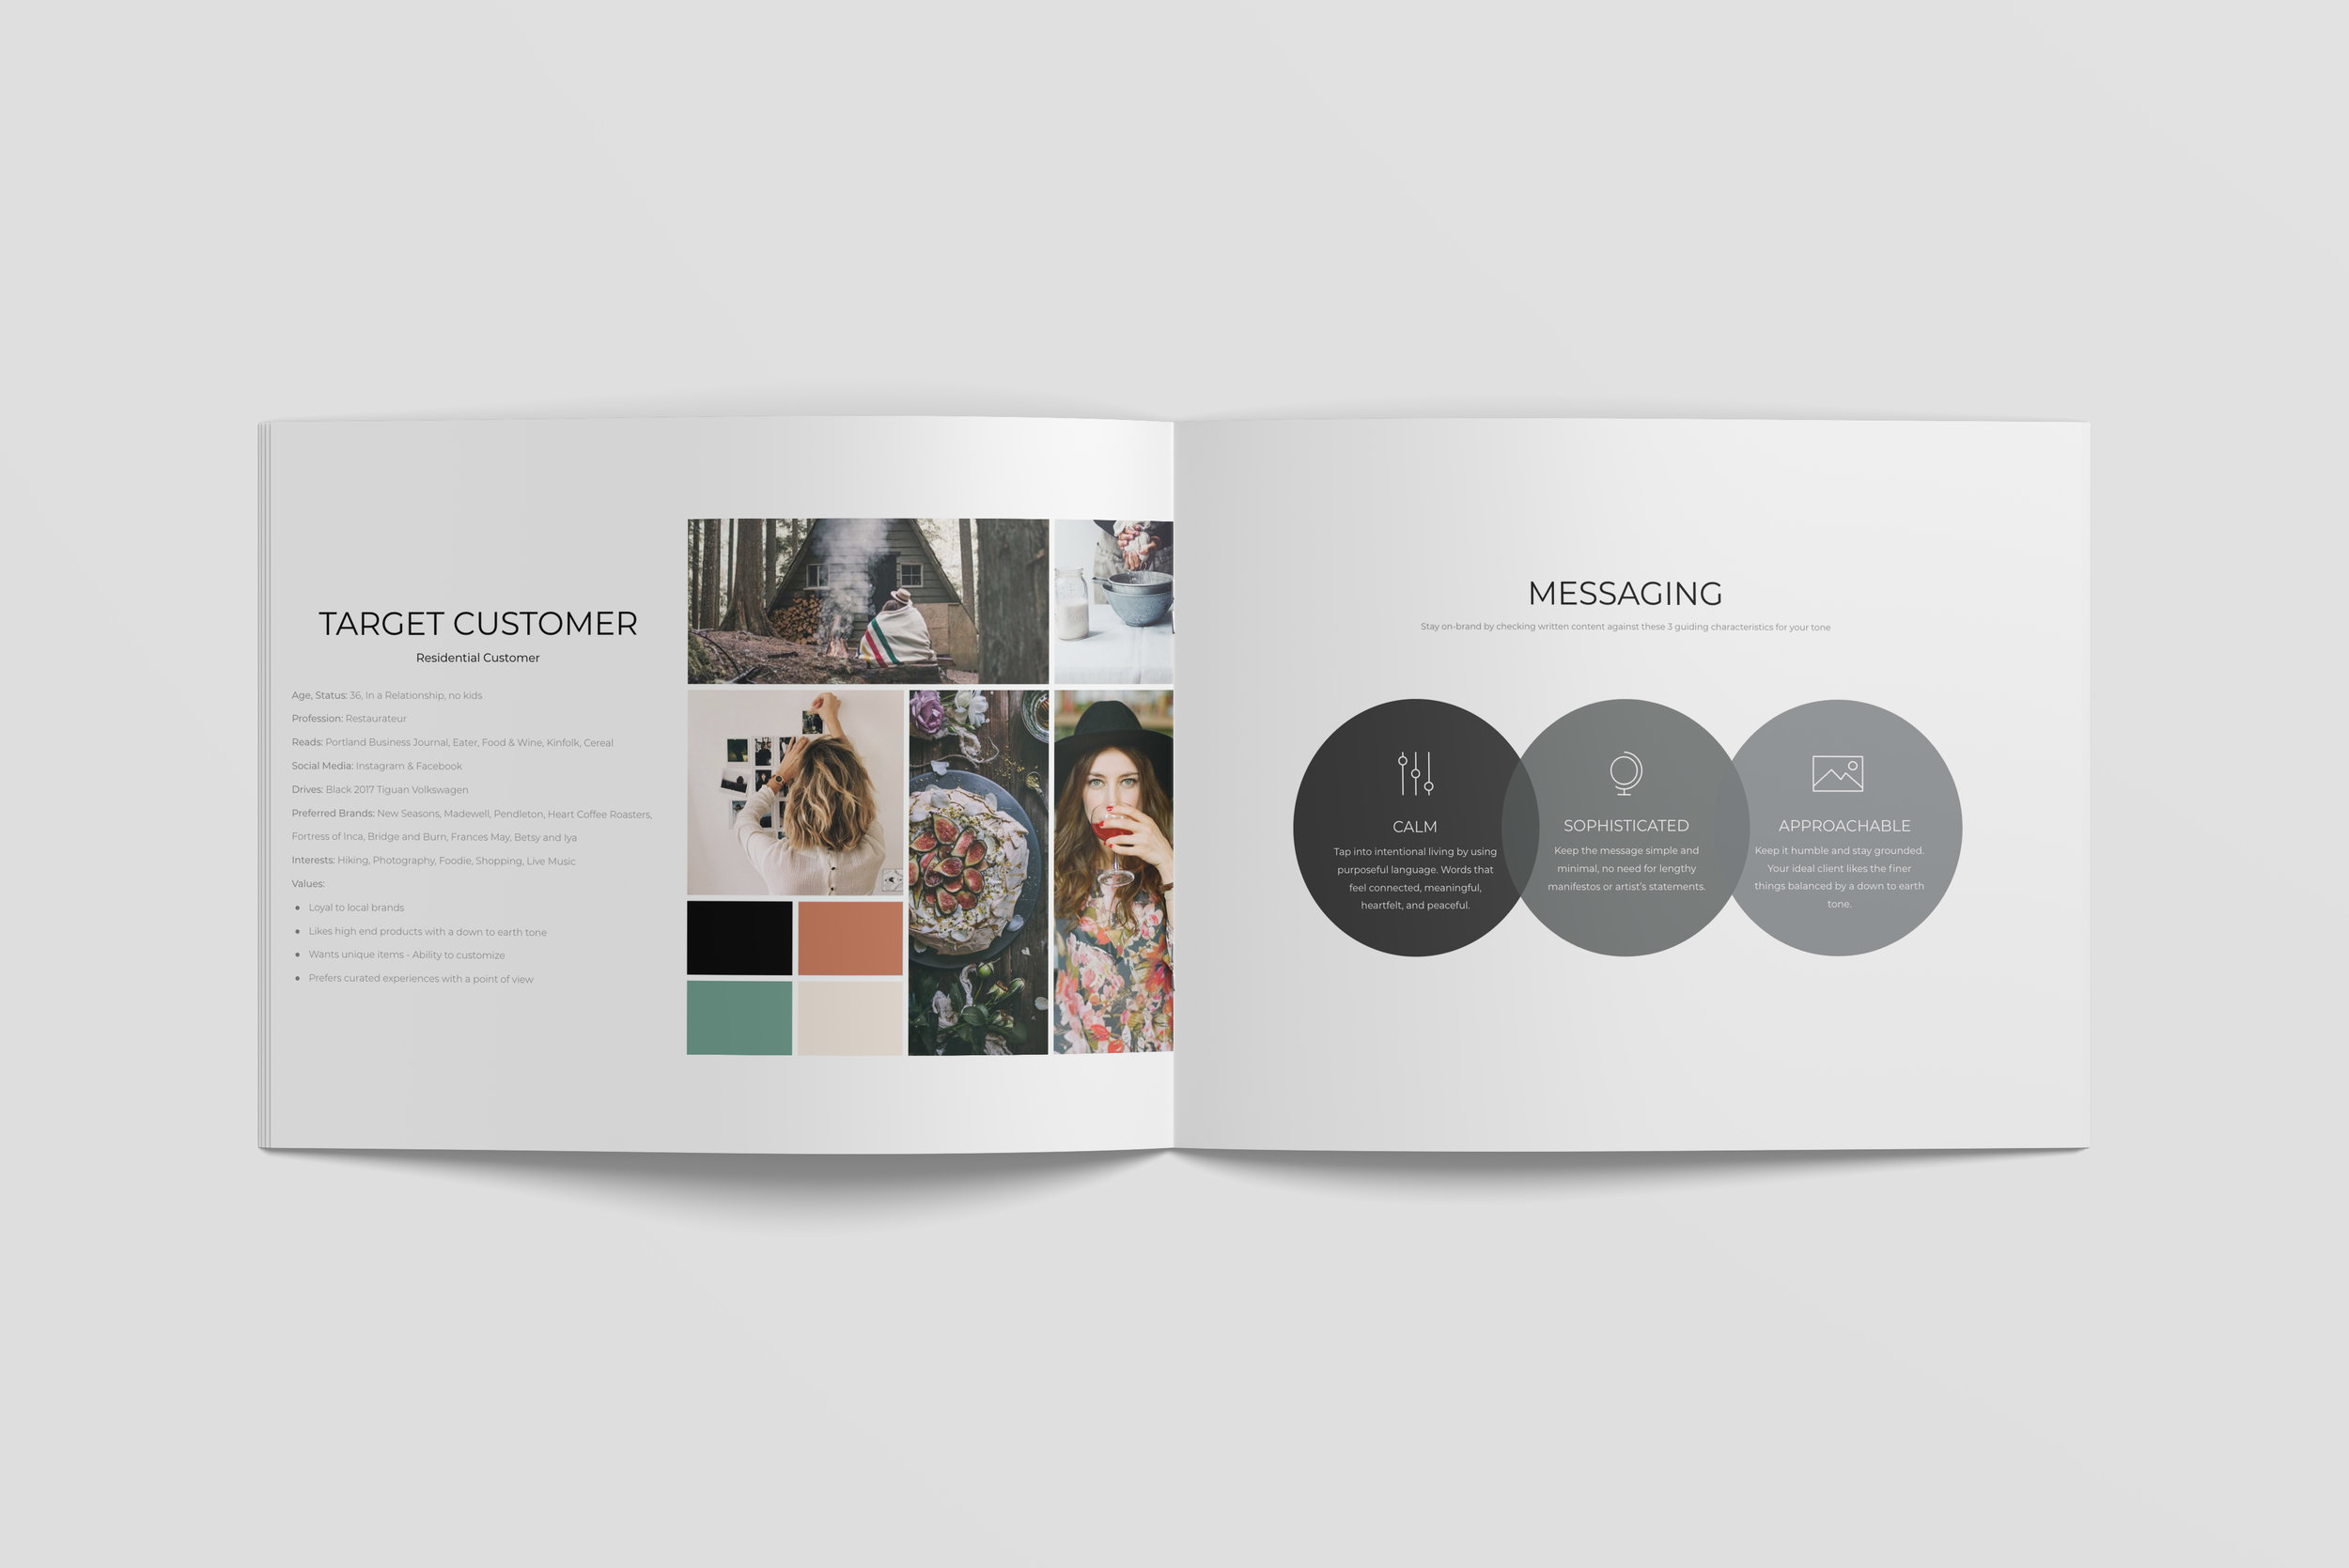 Brand Book   *imagery in moodboards are pulled from online sources and used internally, not intended for commercial use